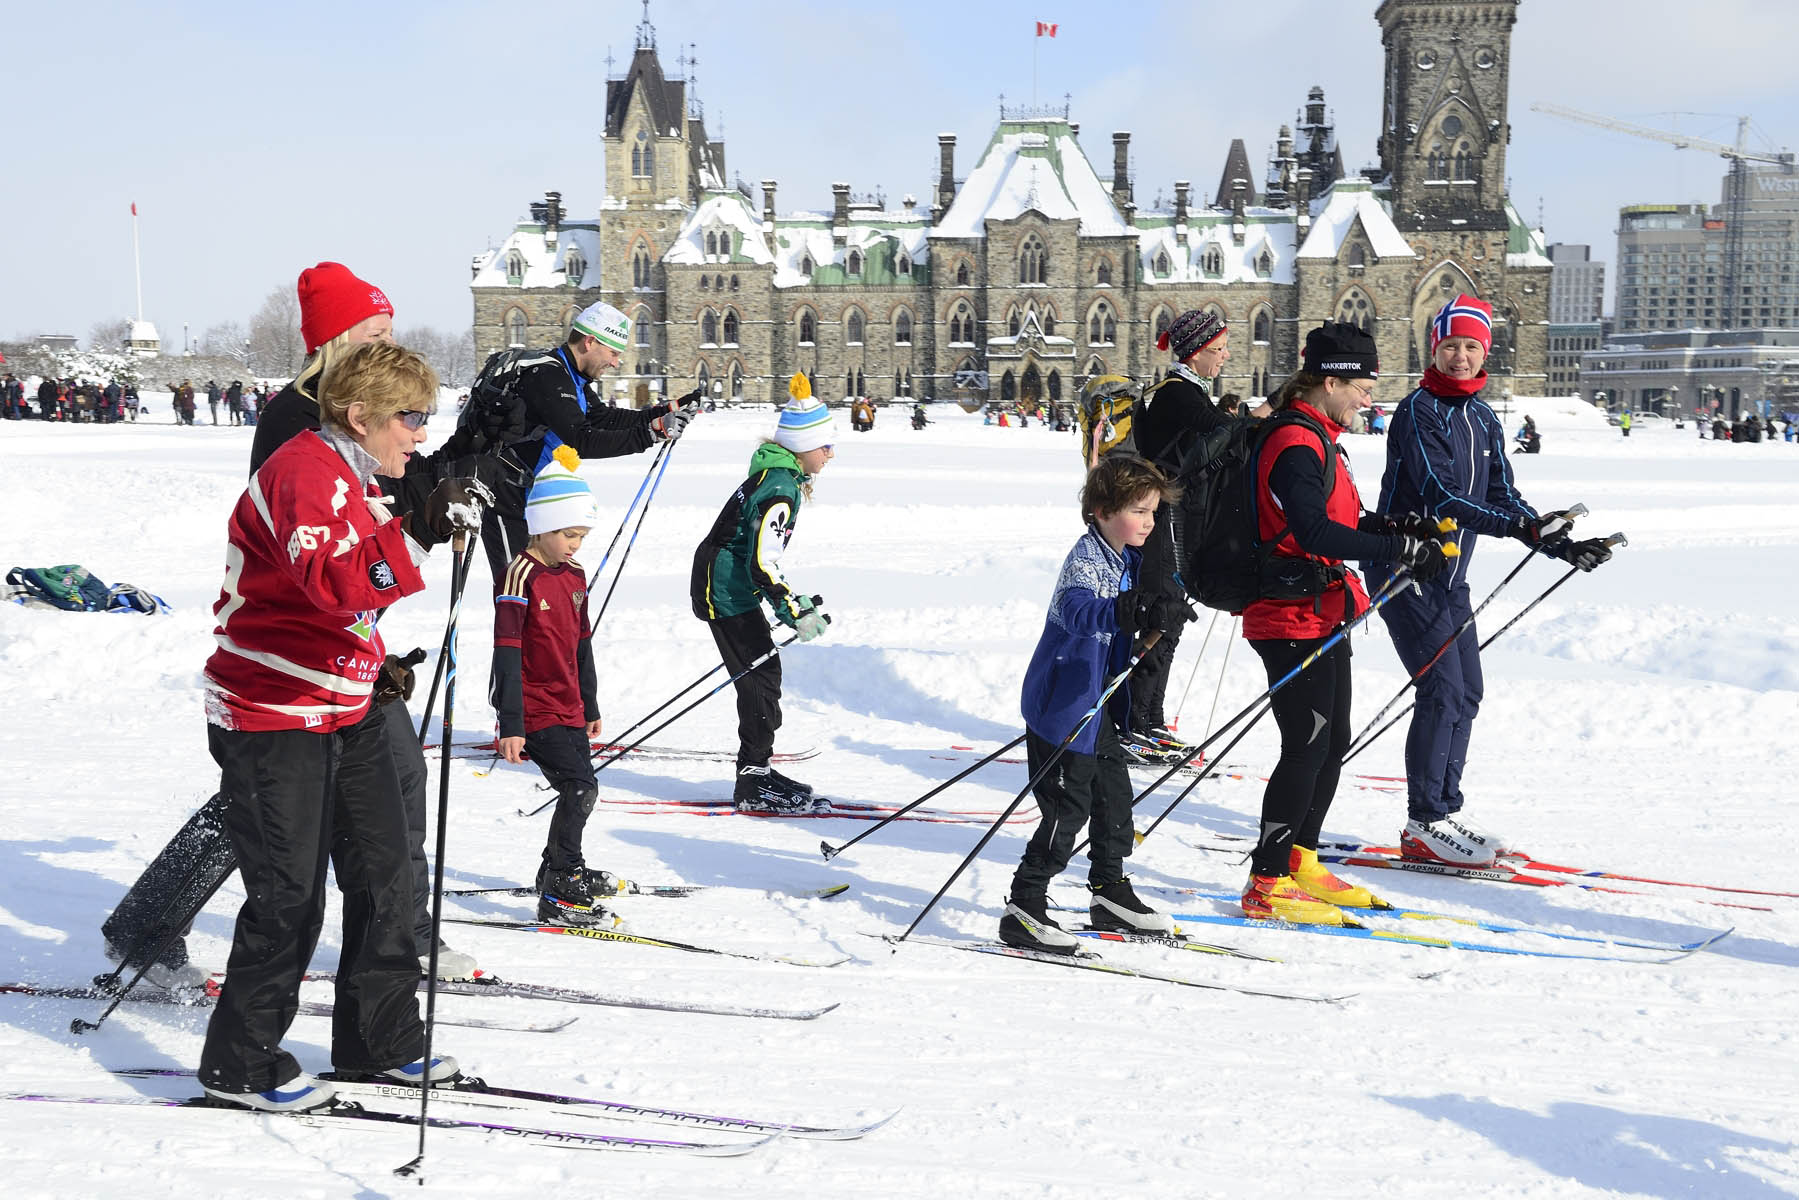 In celebration of Canada's 150th anniversary, senators, members of Parliament, Olympians and Paralympians, youth and volunteers skied a cumulative relay of 150 kilometres.